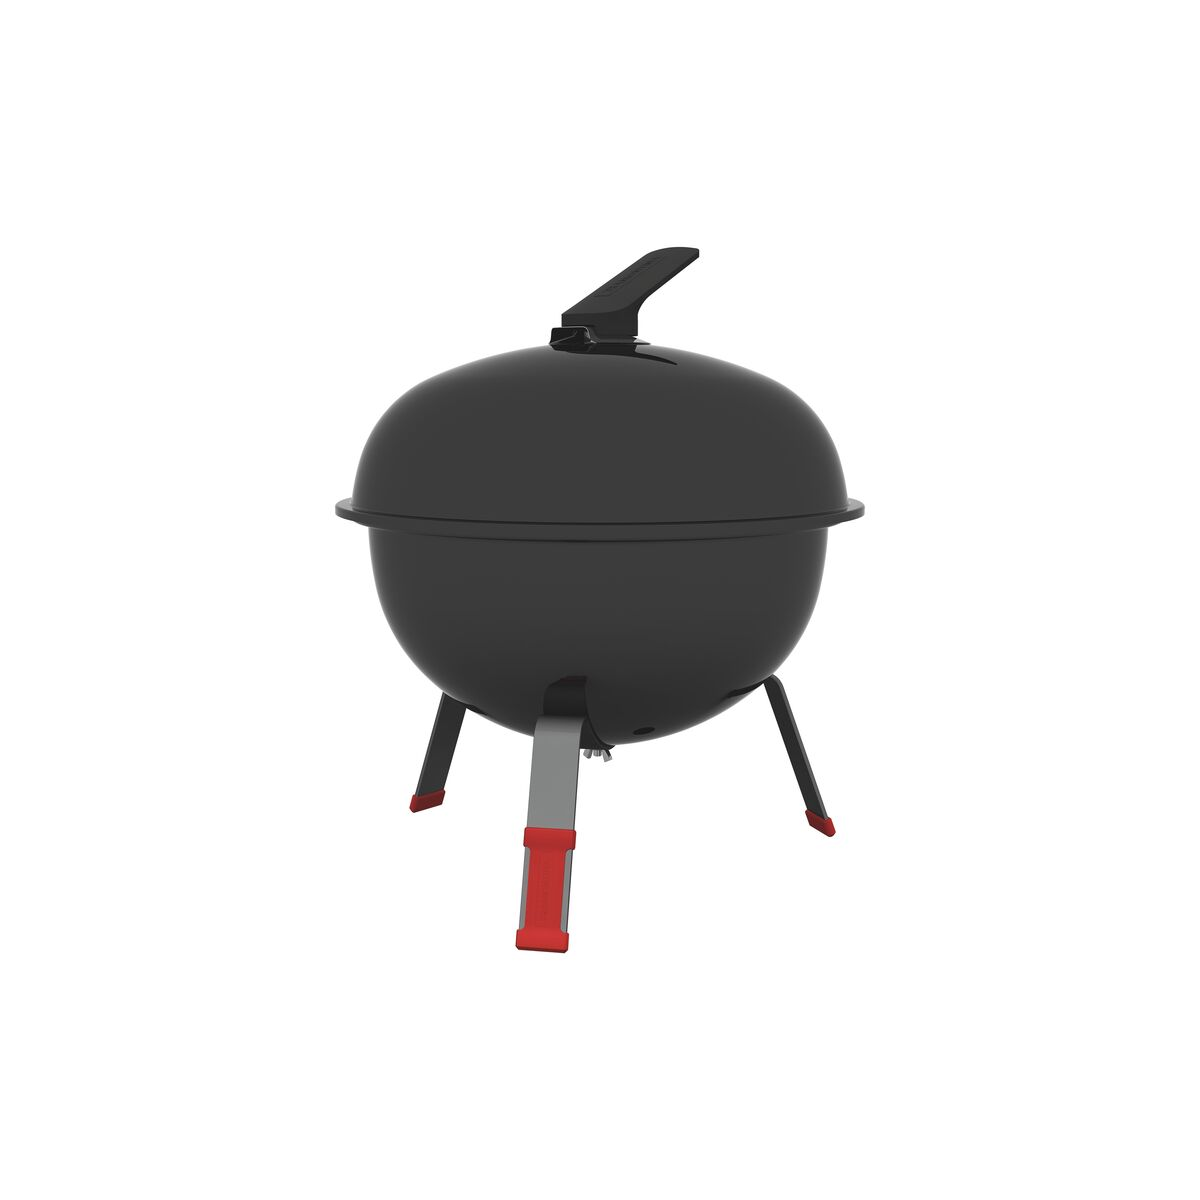 Tramontina TCP-320L charcoal grill with enameled steel lid and stainless steel grate and utensils